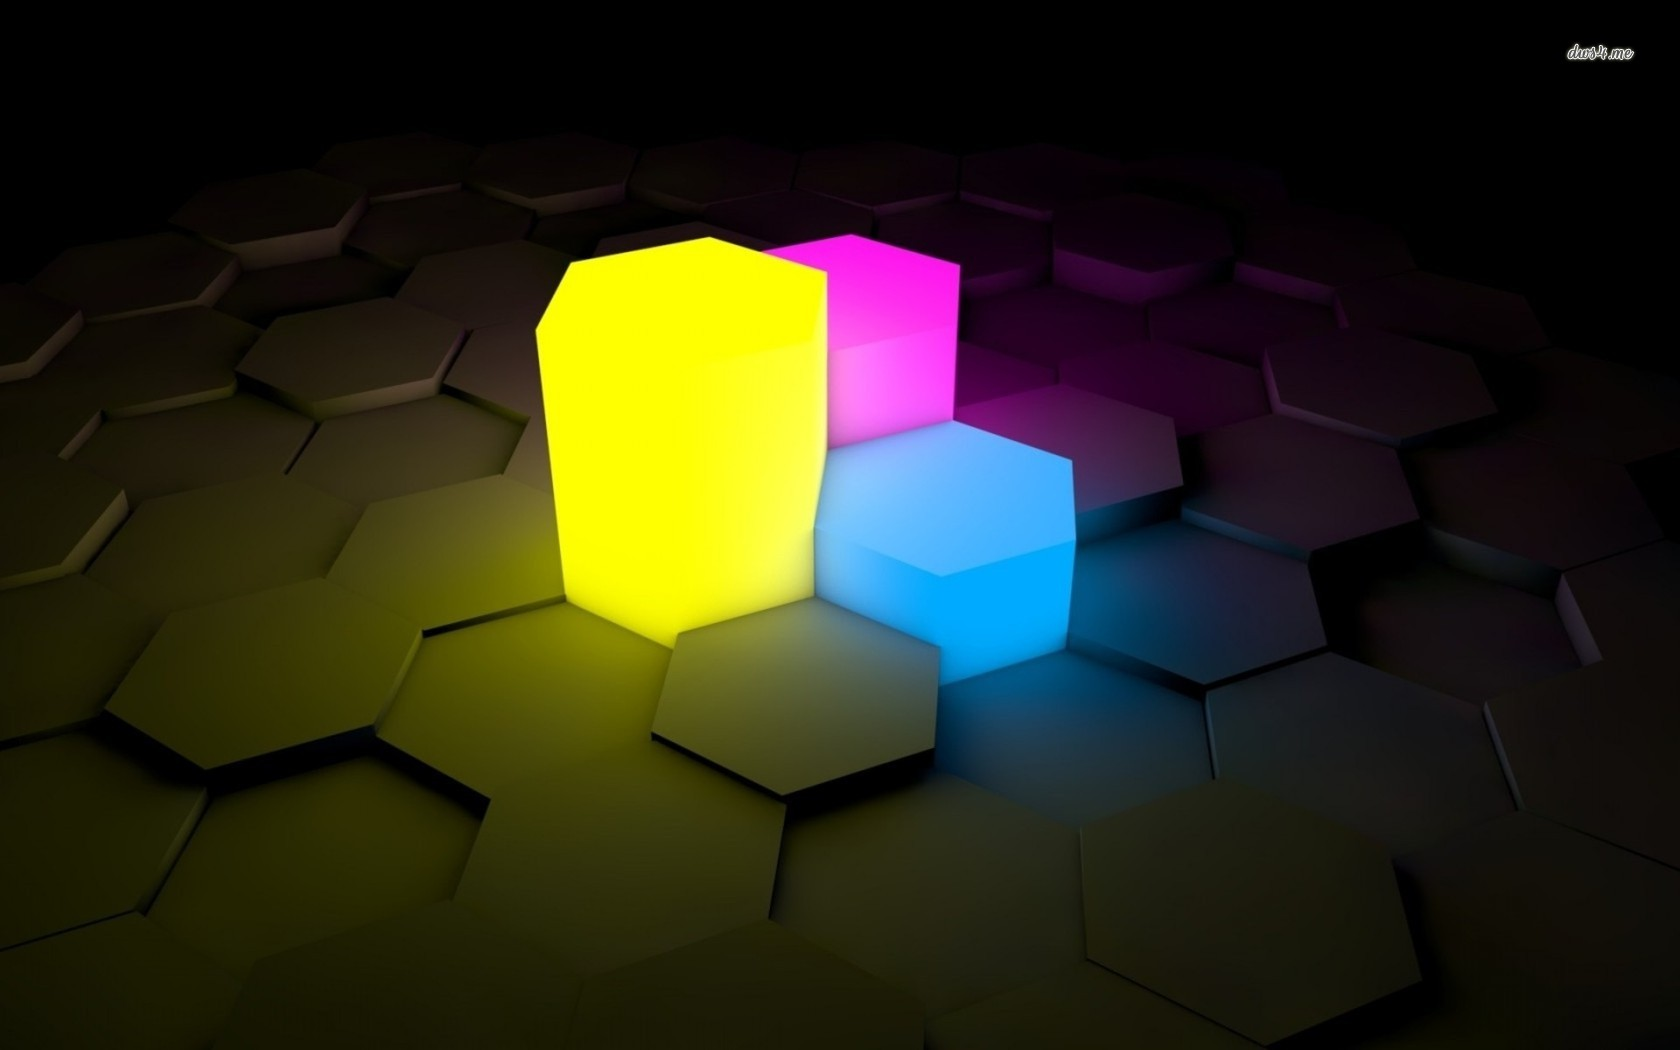 Neon hexagonal prism wallpaper